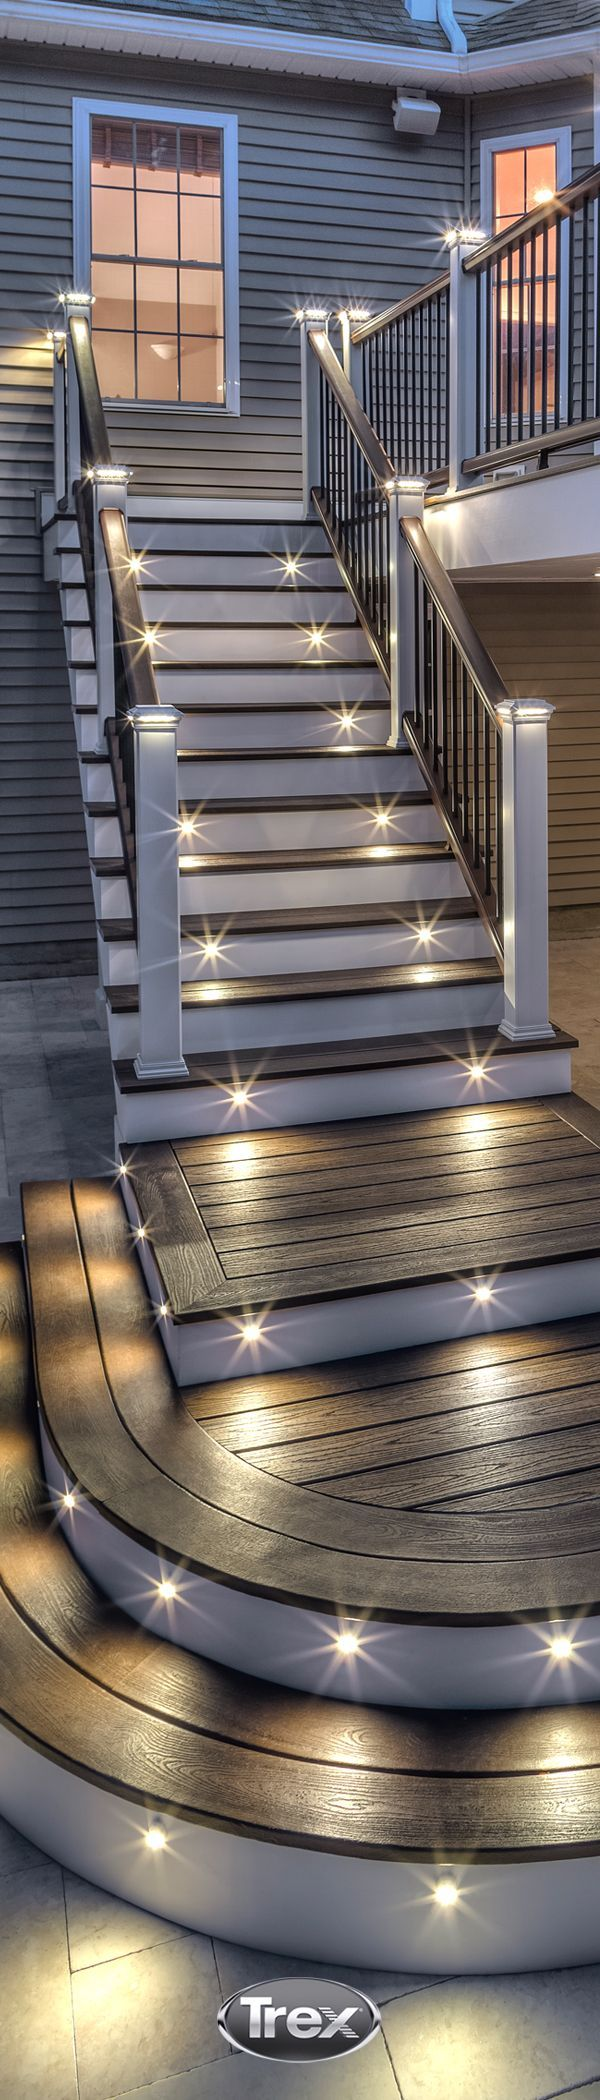 Create A Little Drama On Your Deck With Deck Lighting Installed On Stair  Risers And Railing · Deck StairsOutdoor ...